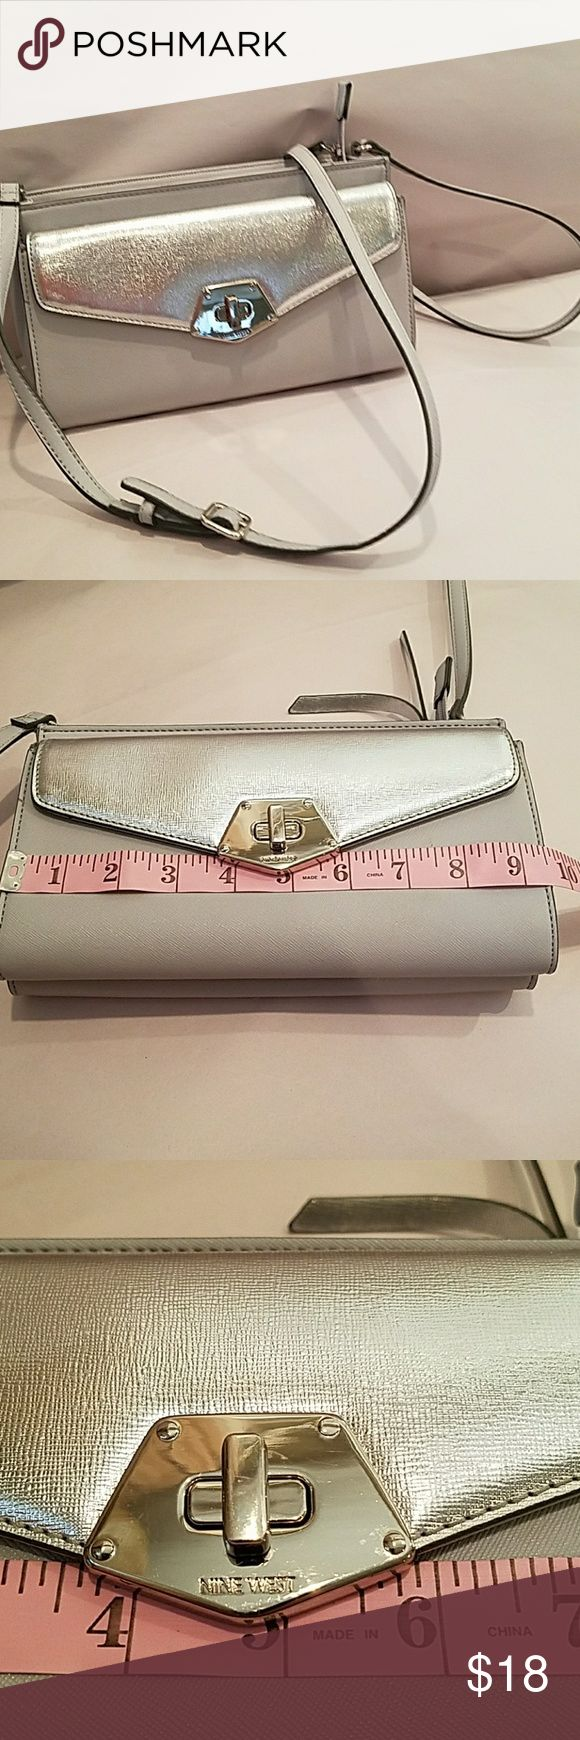 NWOT 9 West crossbody bag Light gray bag with silver flap and silver trim. 24 inch drop. Never used. No scratches apparent on the metal and no fraying on the handle. There is an unbranded dust jacket in the front pocket. Tiny spot on the back  priced accordingly. Bundle the save 20%. Nine West Bags Crossbody Bags